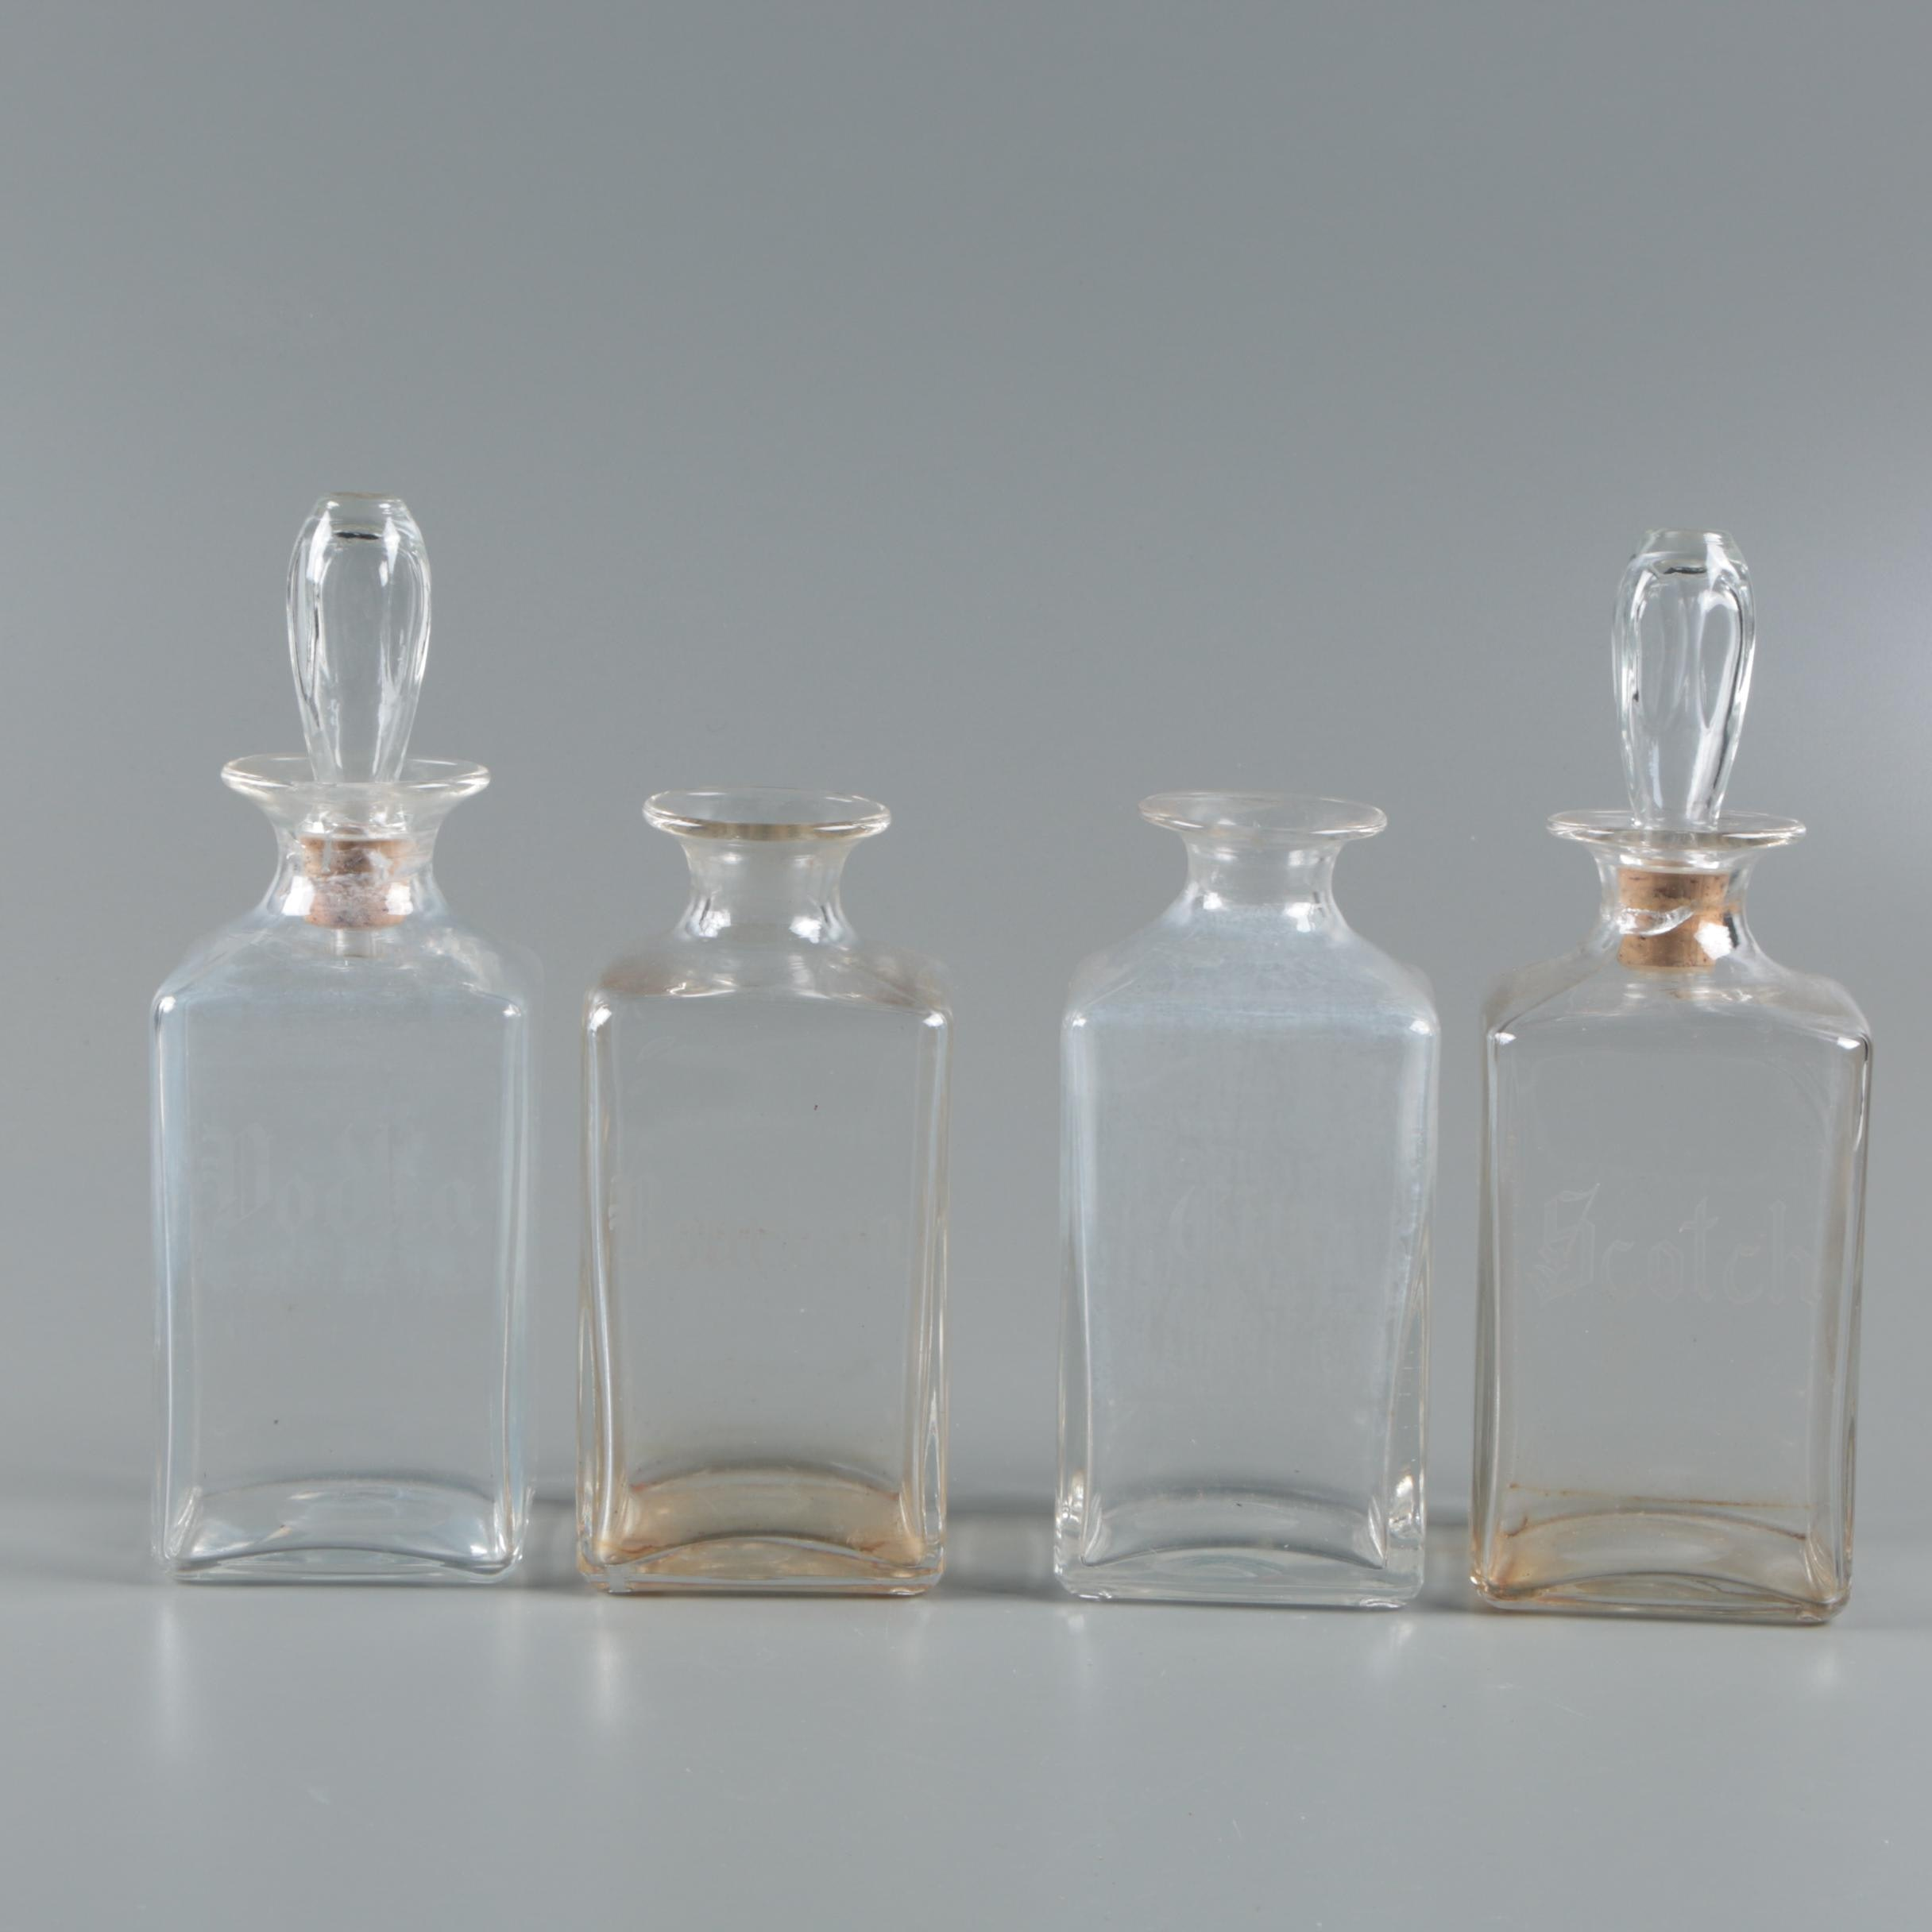 Scotch, Vodka, Bourbon and Gin Etched Glass Decanter Set